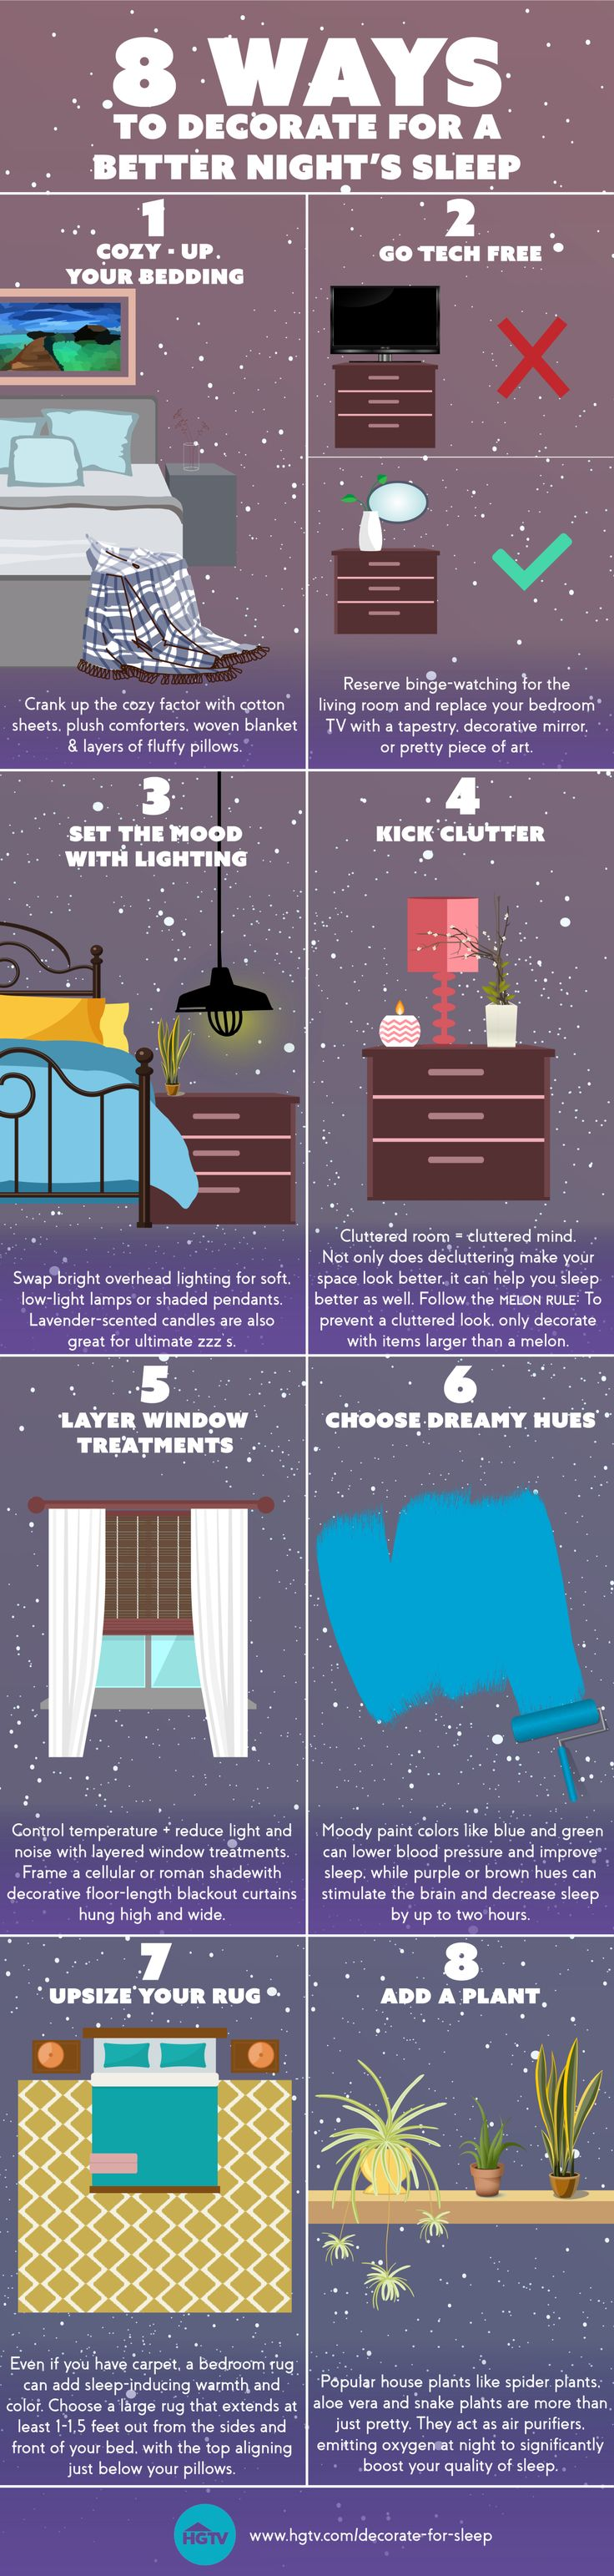 Snuggle up in style with easy design tricks that can improve your quality of sleep.